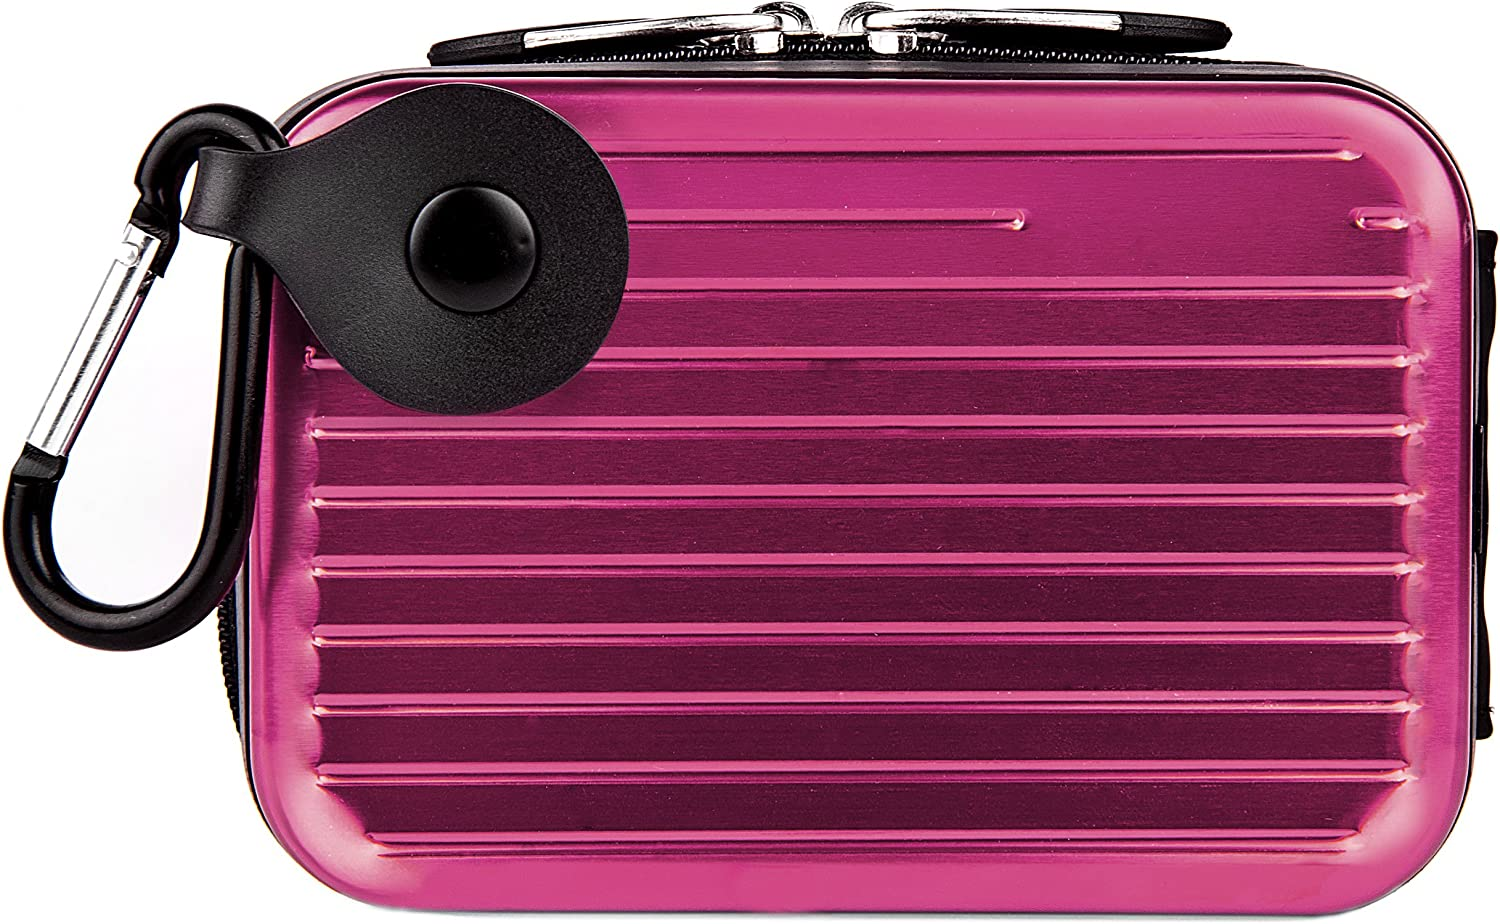 Vangoddy Pascal Mettalic Metal Case for Canon PowerShot SX610 HS Digital Cameras and Screen Protector Purple